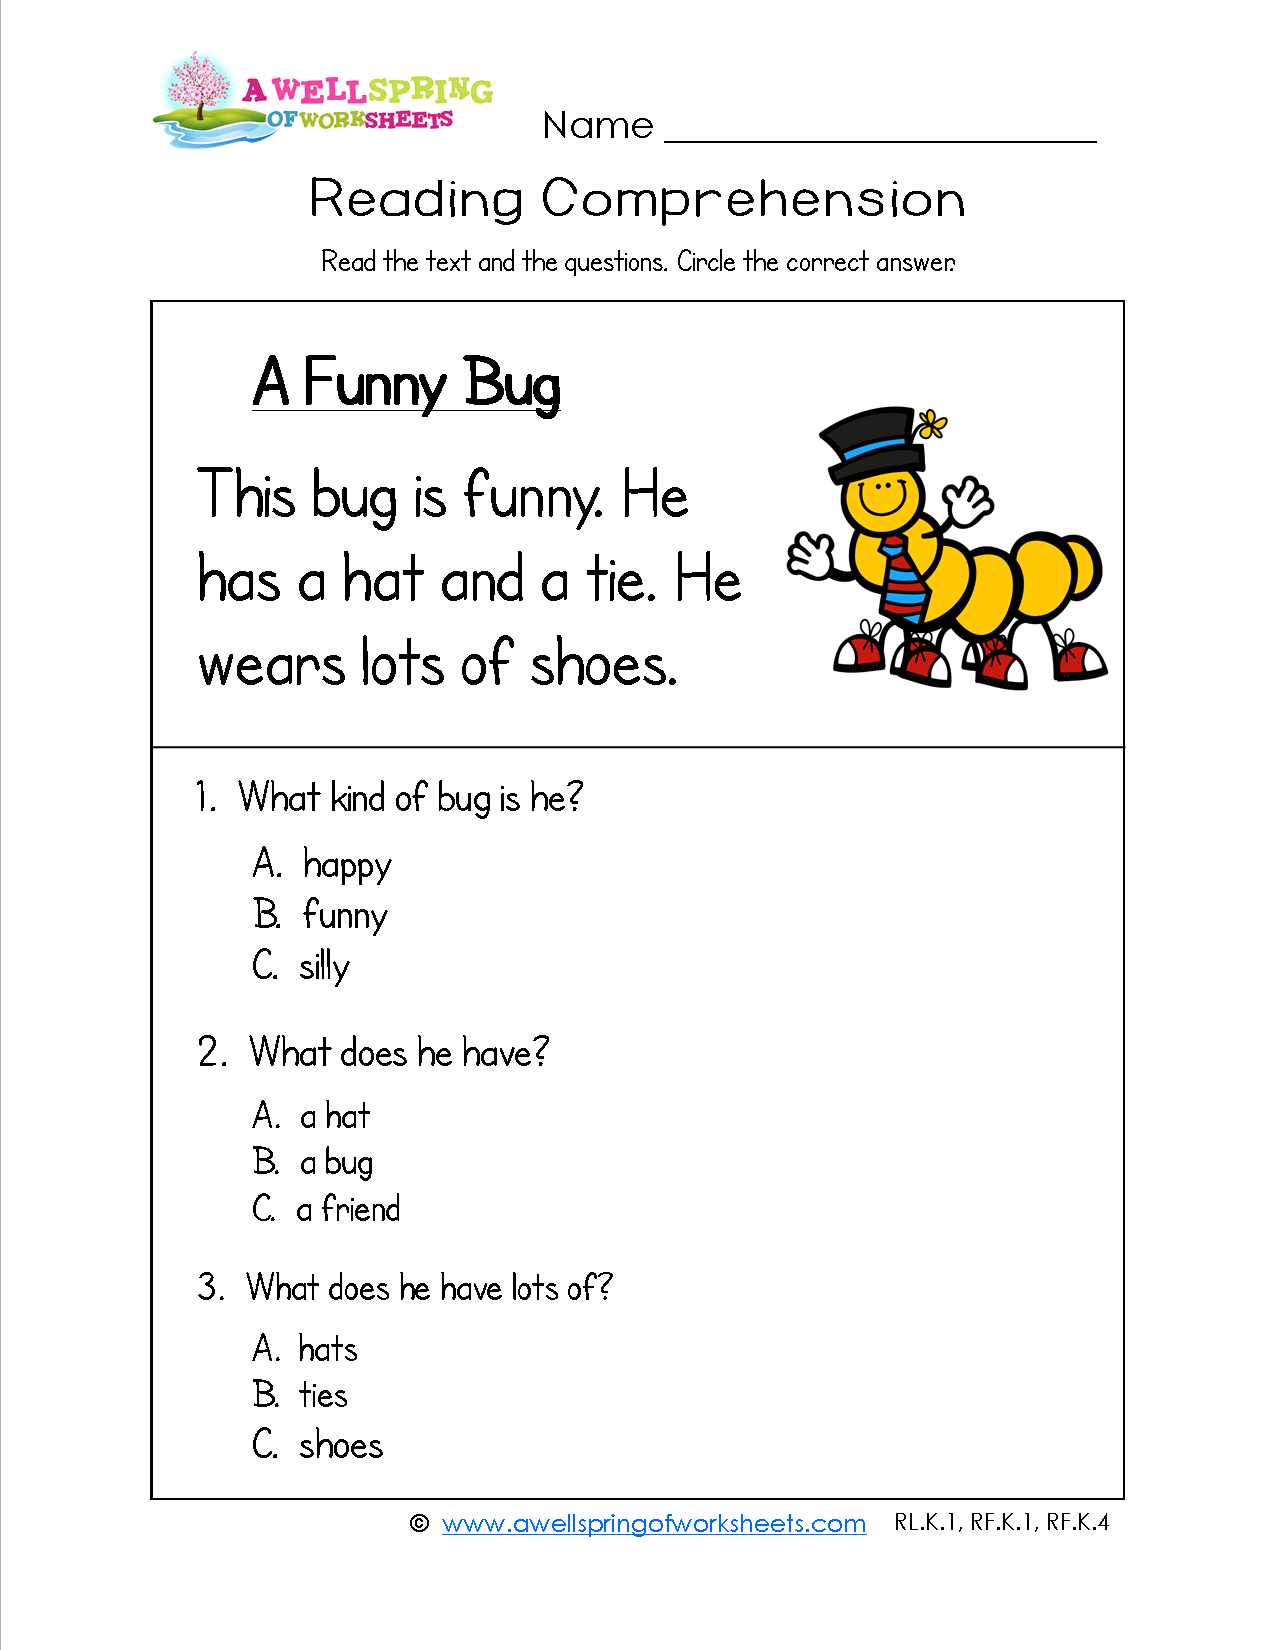 Worksheets Easy Reading Comprehension Worksheets grade level worksheets kindergarten language arts pinterest reading comprehension a funny bug has three simple sentences and questions this worksheet is on